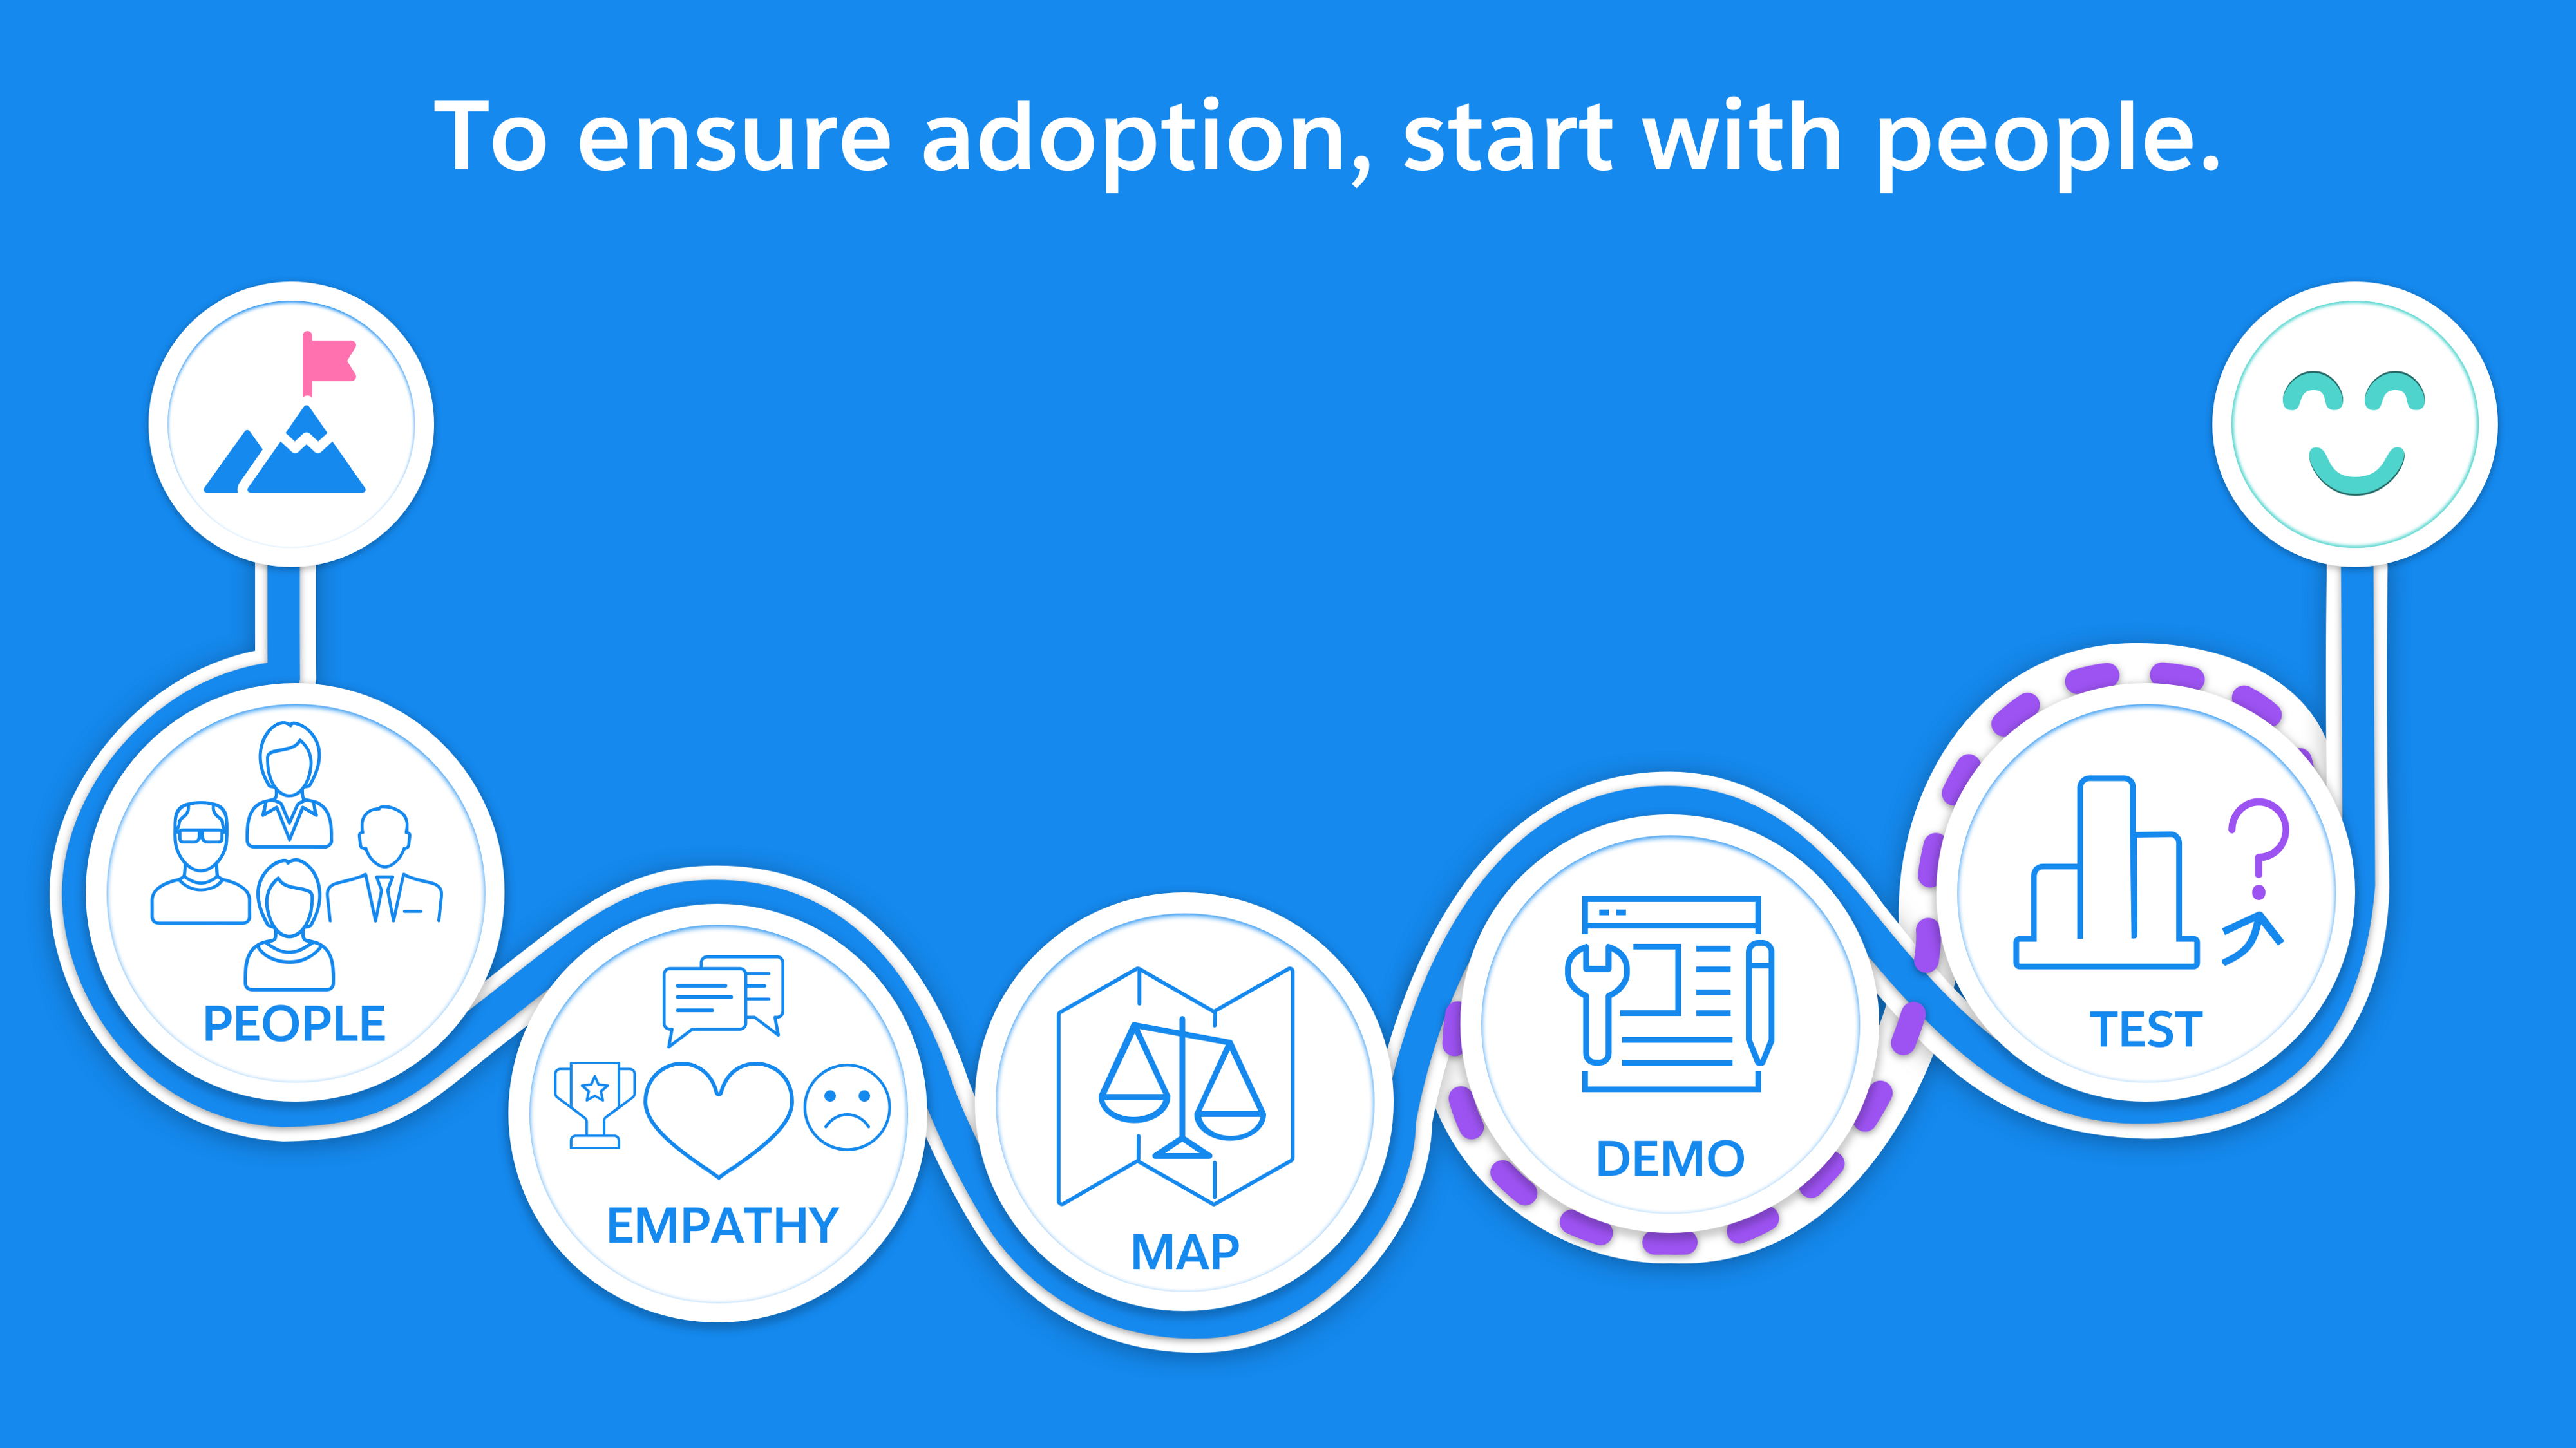 To ensure adoption, start with people. Empathise,, map solutions, demo the most valuable, test it until adoption is certain.